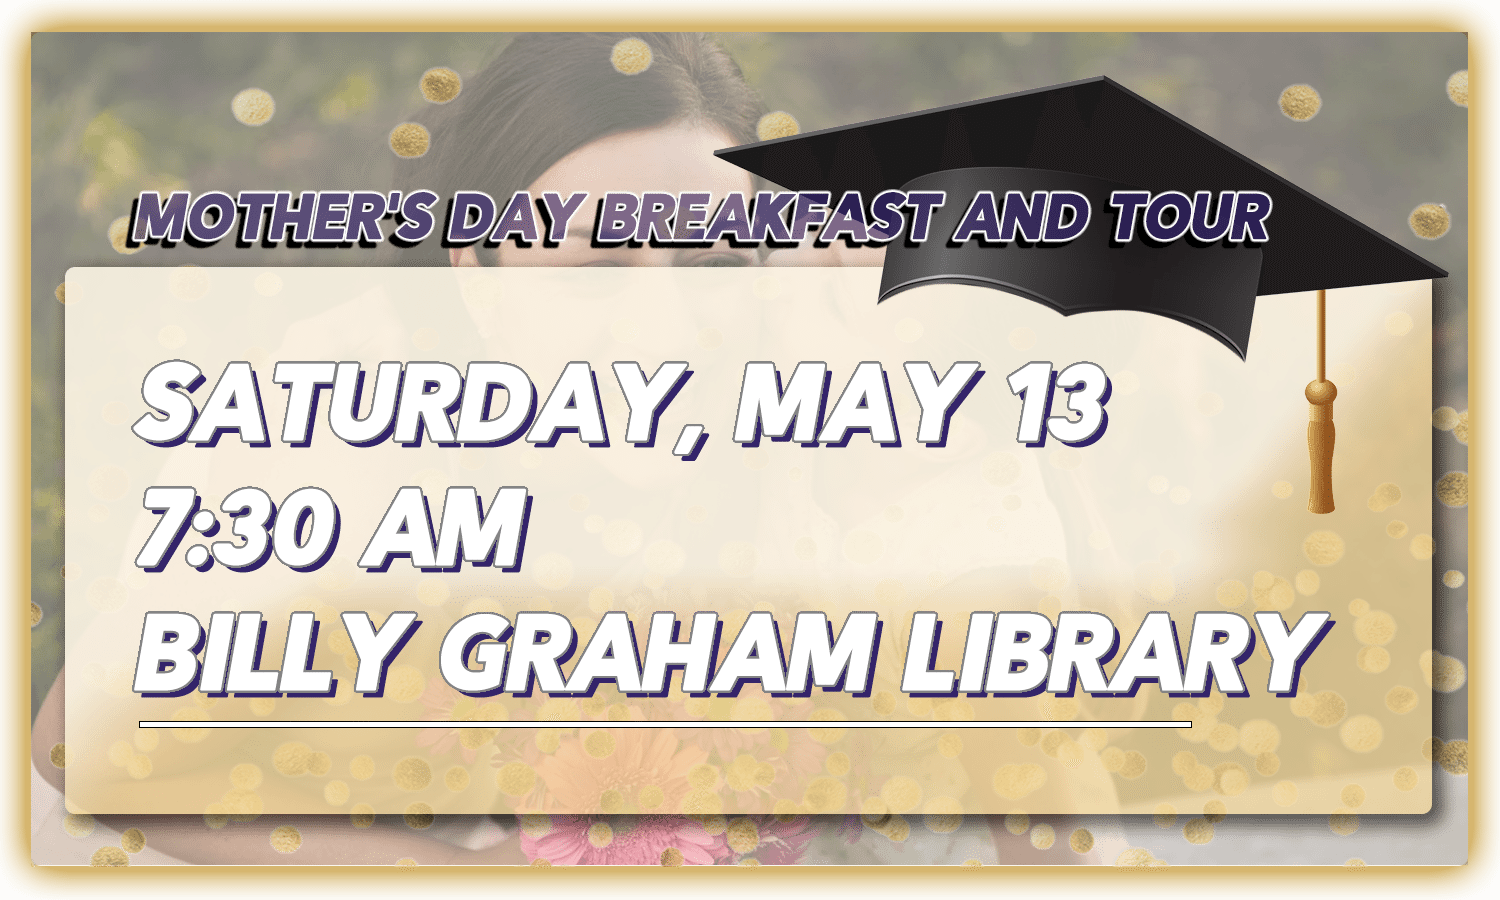 Mother's Day Breakfast and Tour